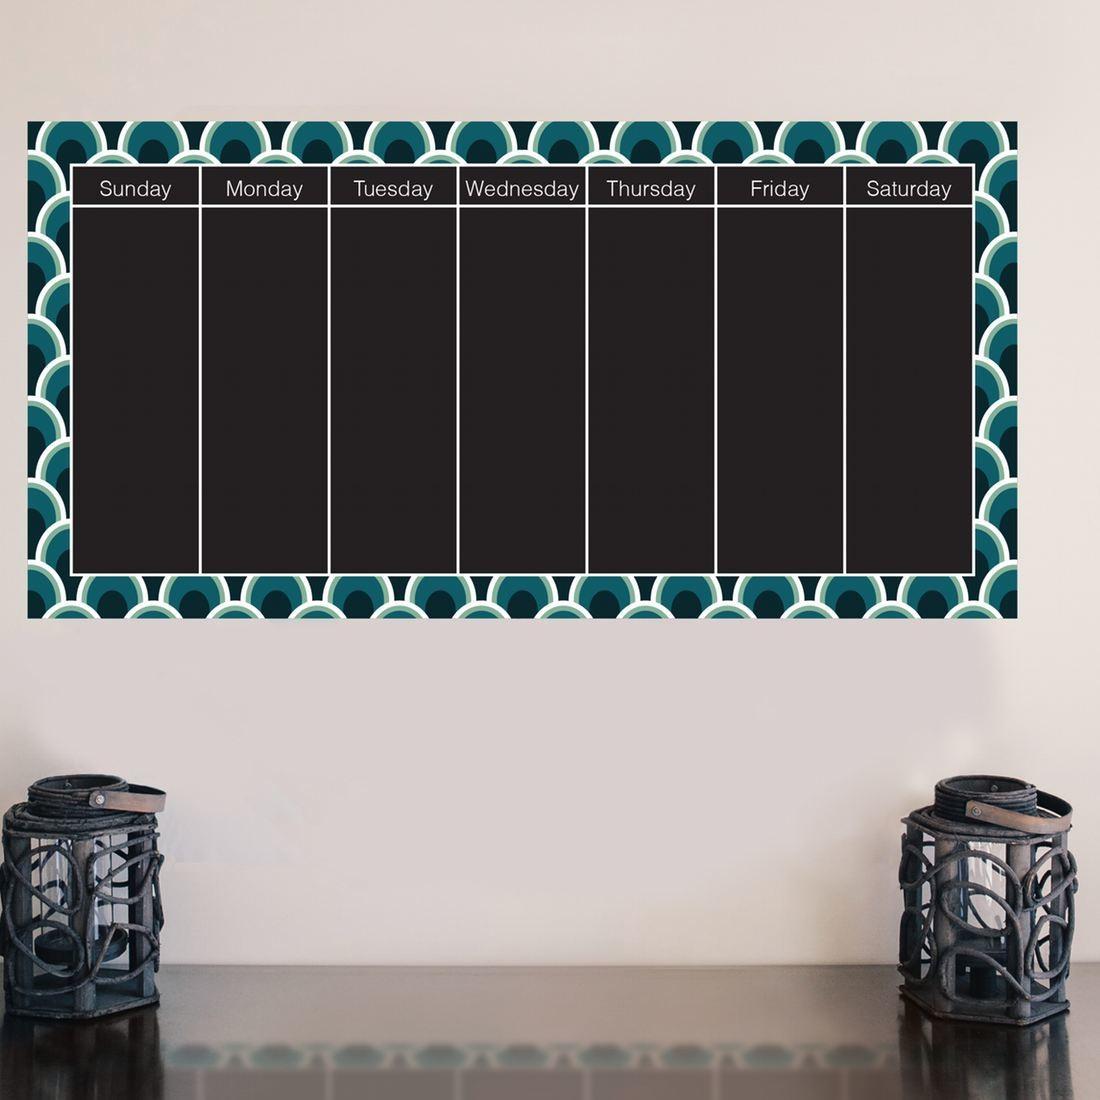 Chalkboard Calendar Decal Brit Shop Diy